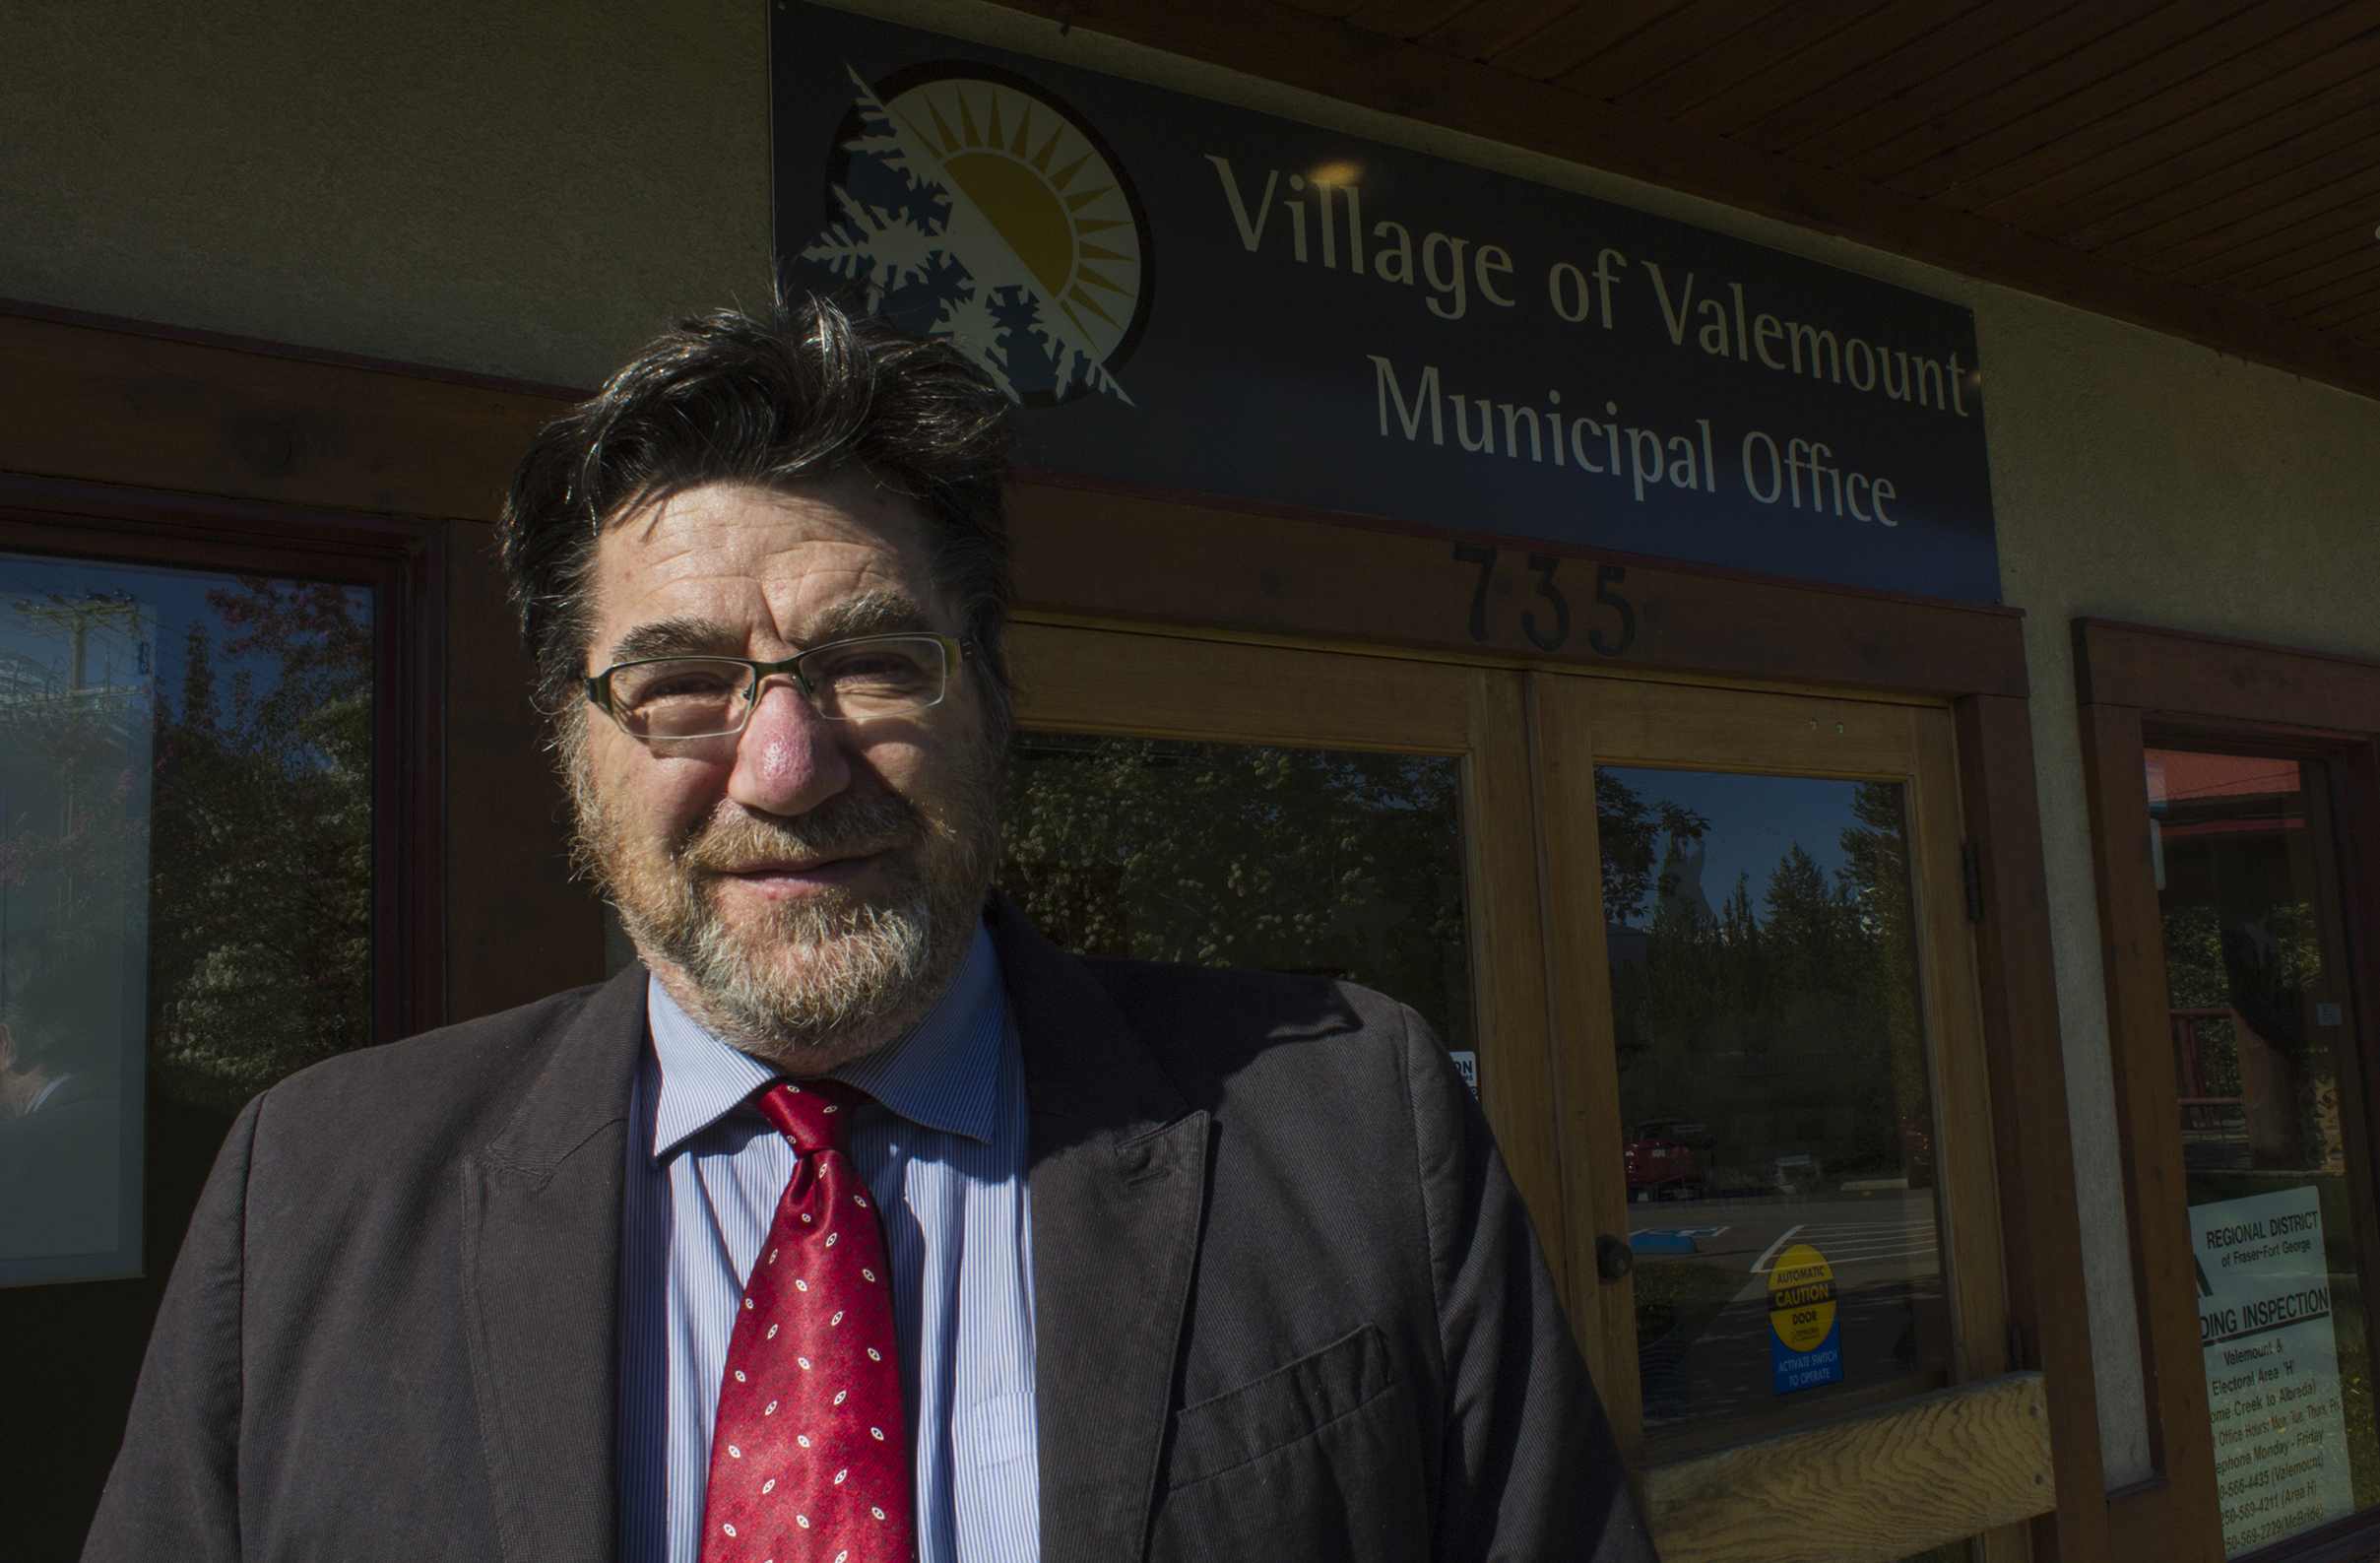 RMG File Photo Mark Brennan is the recently dismissed, former corporate officer for the Village of Valemount.